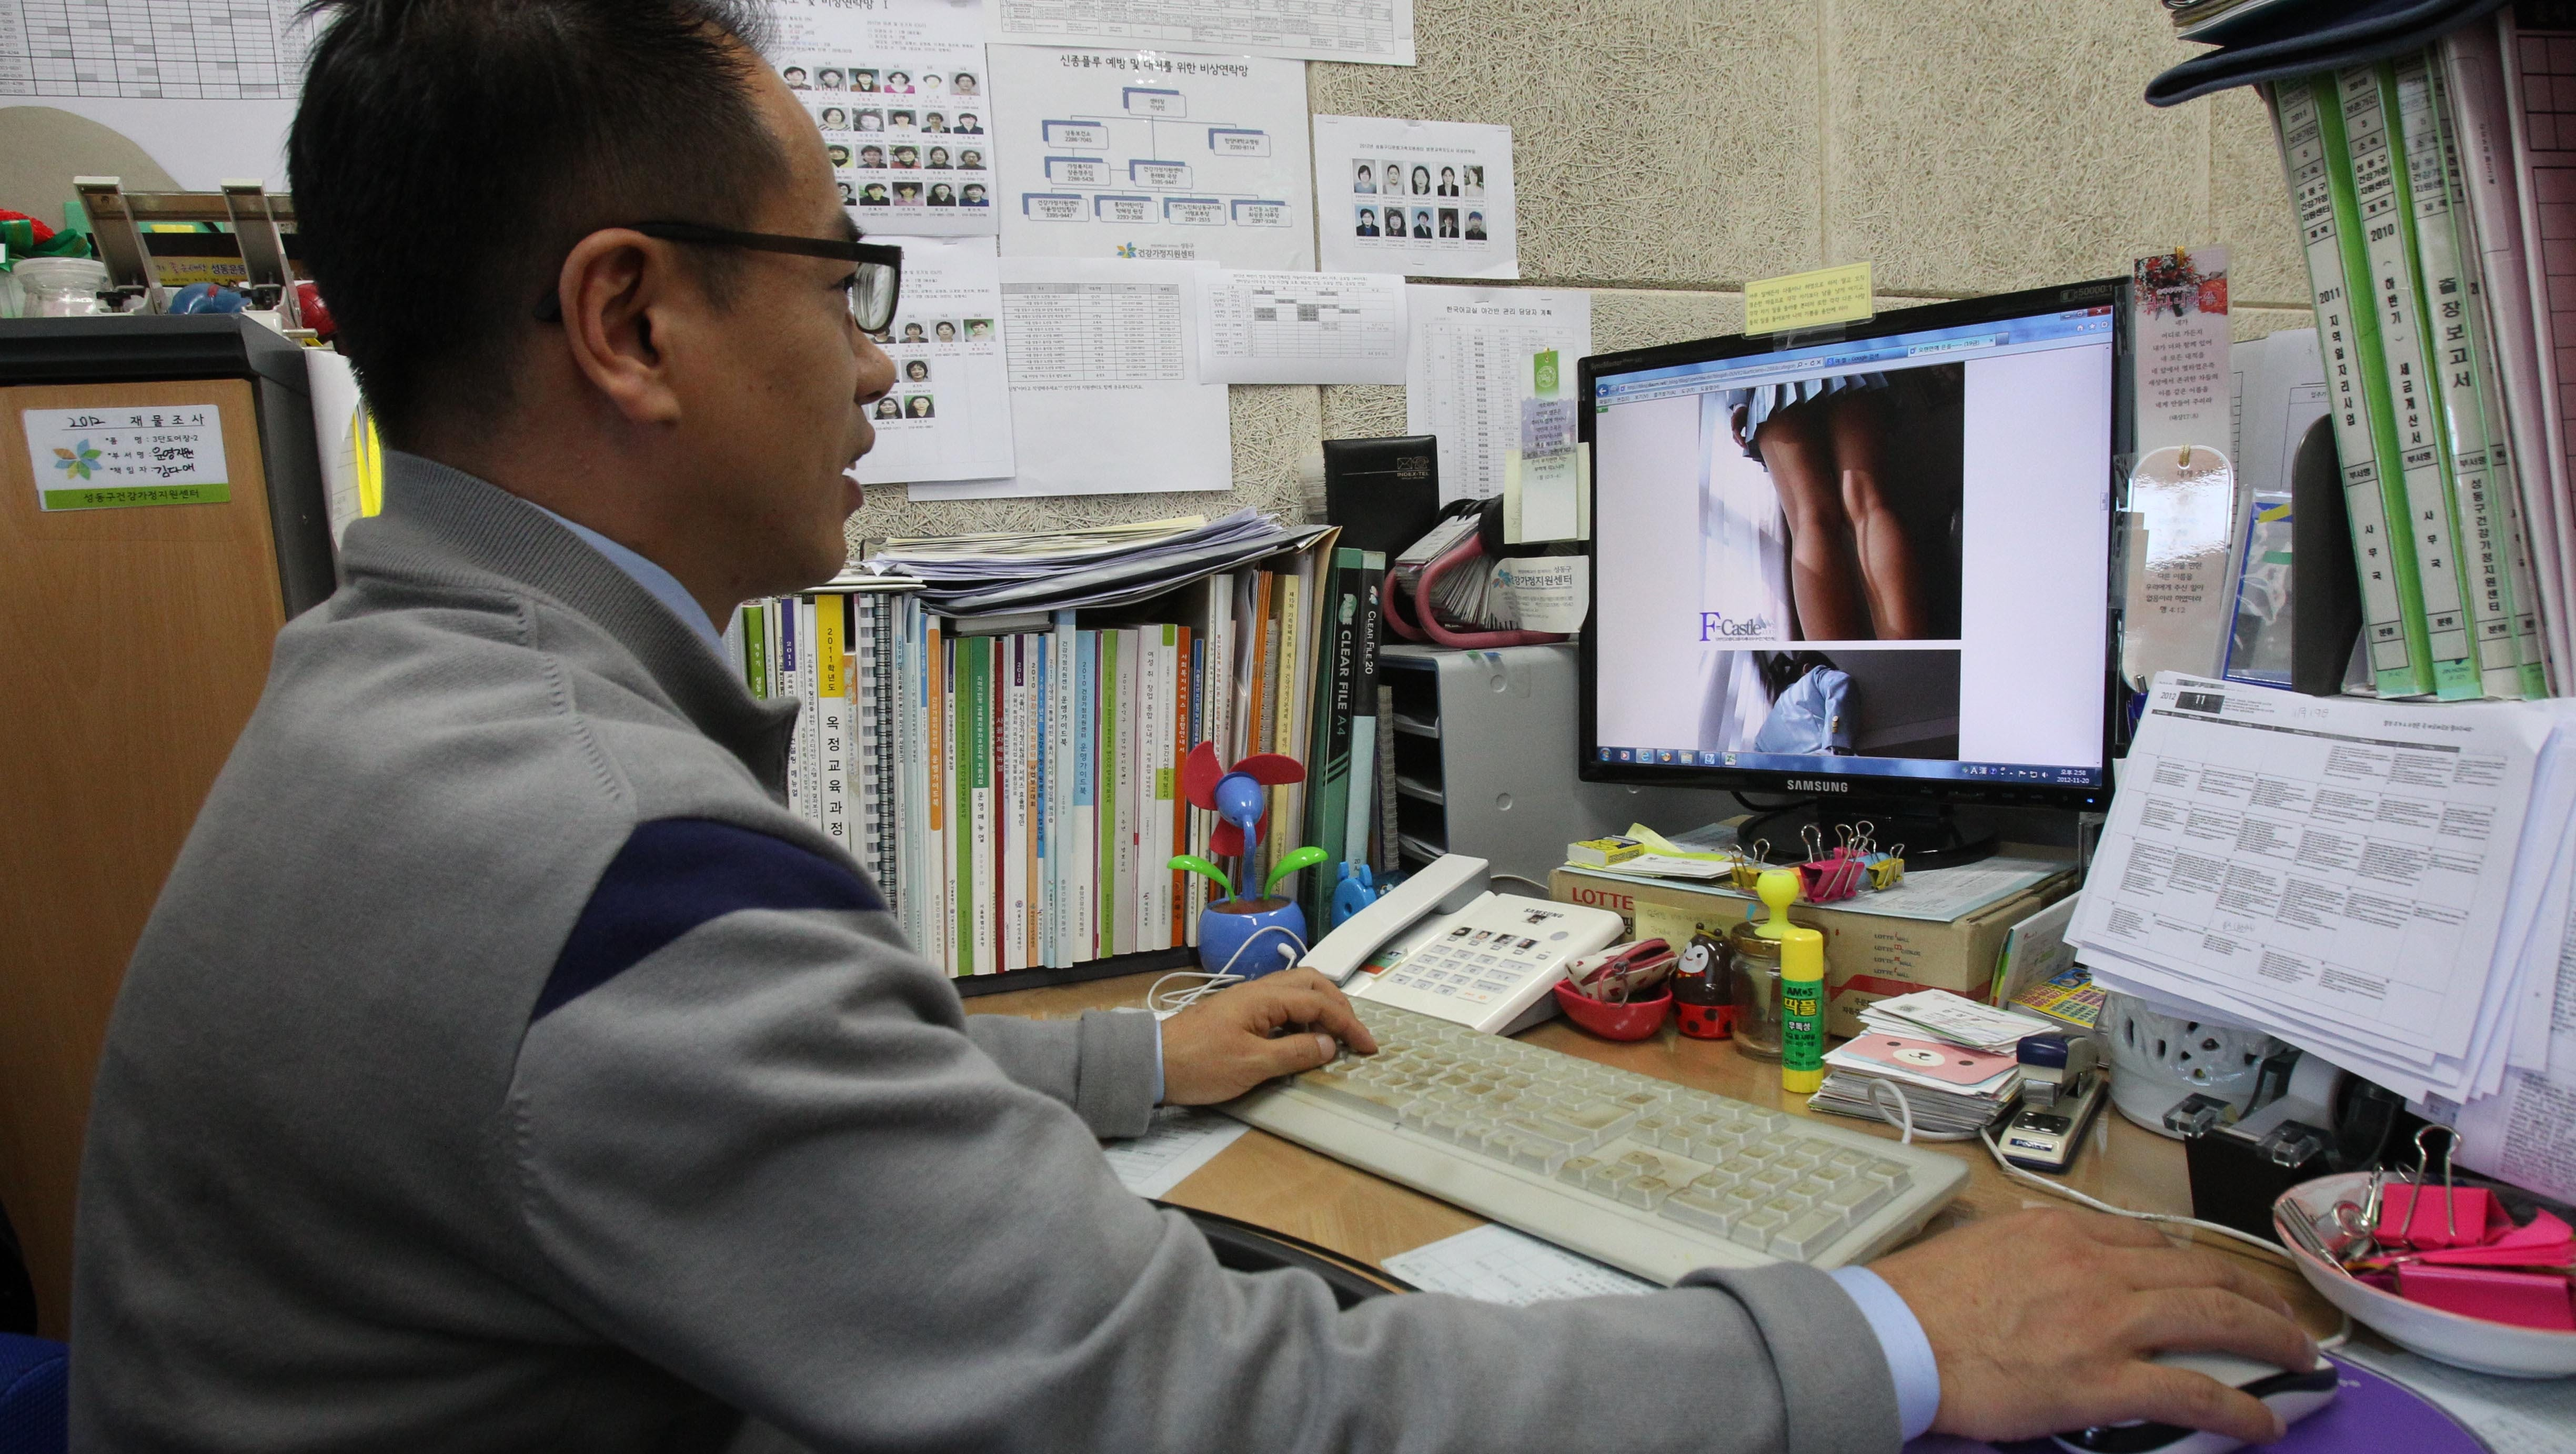 Fine for watching porn south korea